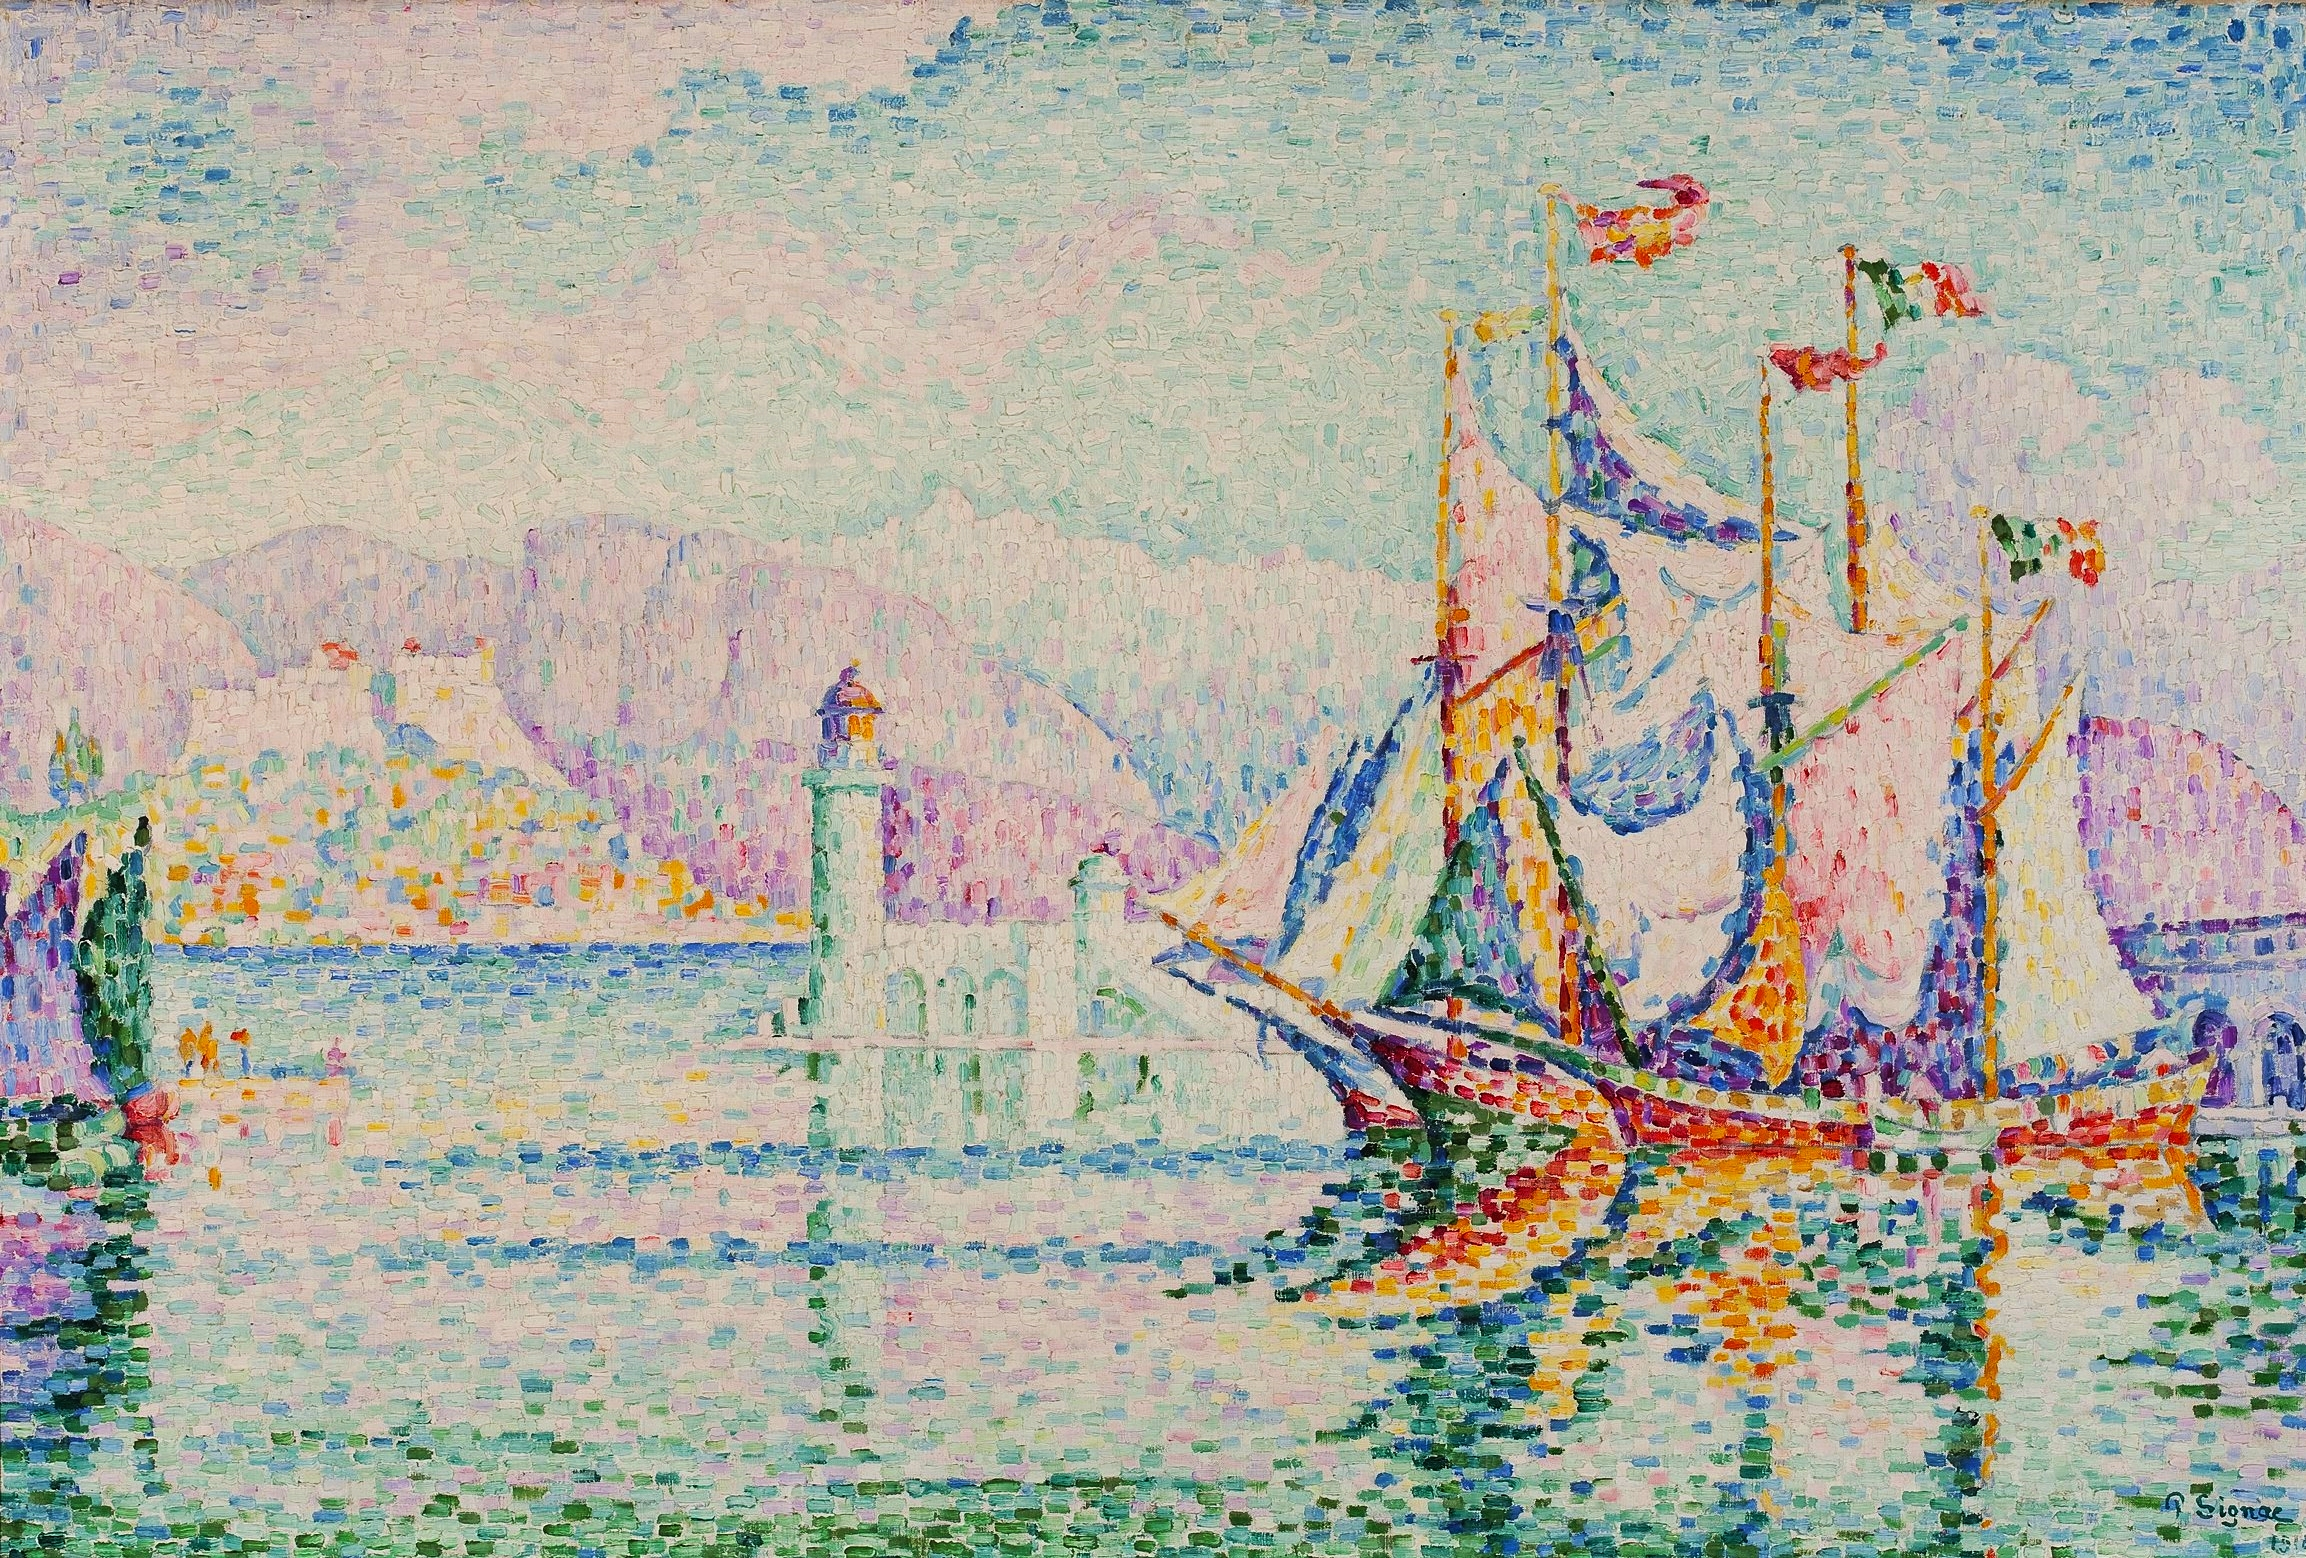 http://upload.wikimedia.org/wikipedia/commons/3/3c/Signac_Antibes_-_Morning.jpg